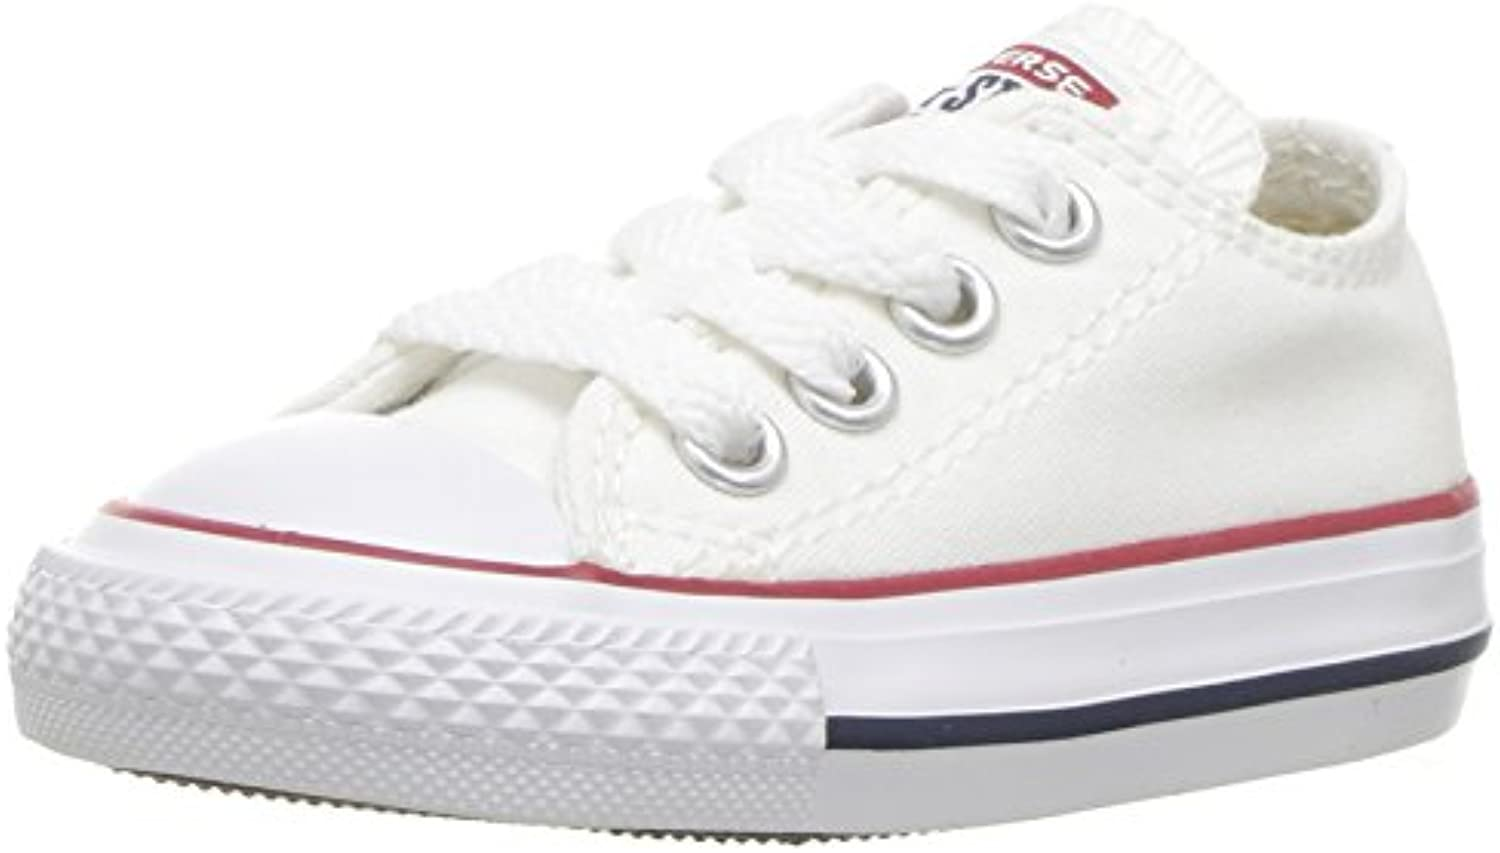 Converse Chucks Kids   YTHS CT ALL STAR OX   Optical White  Schuhgröße:34